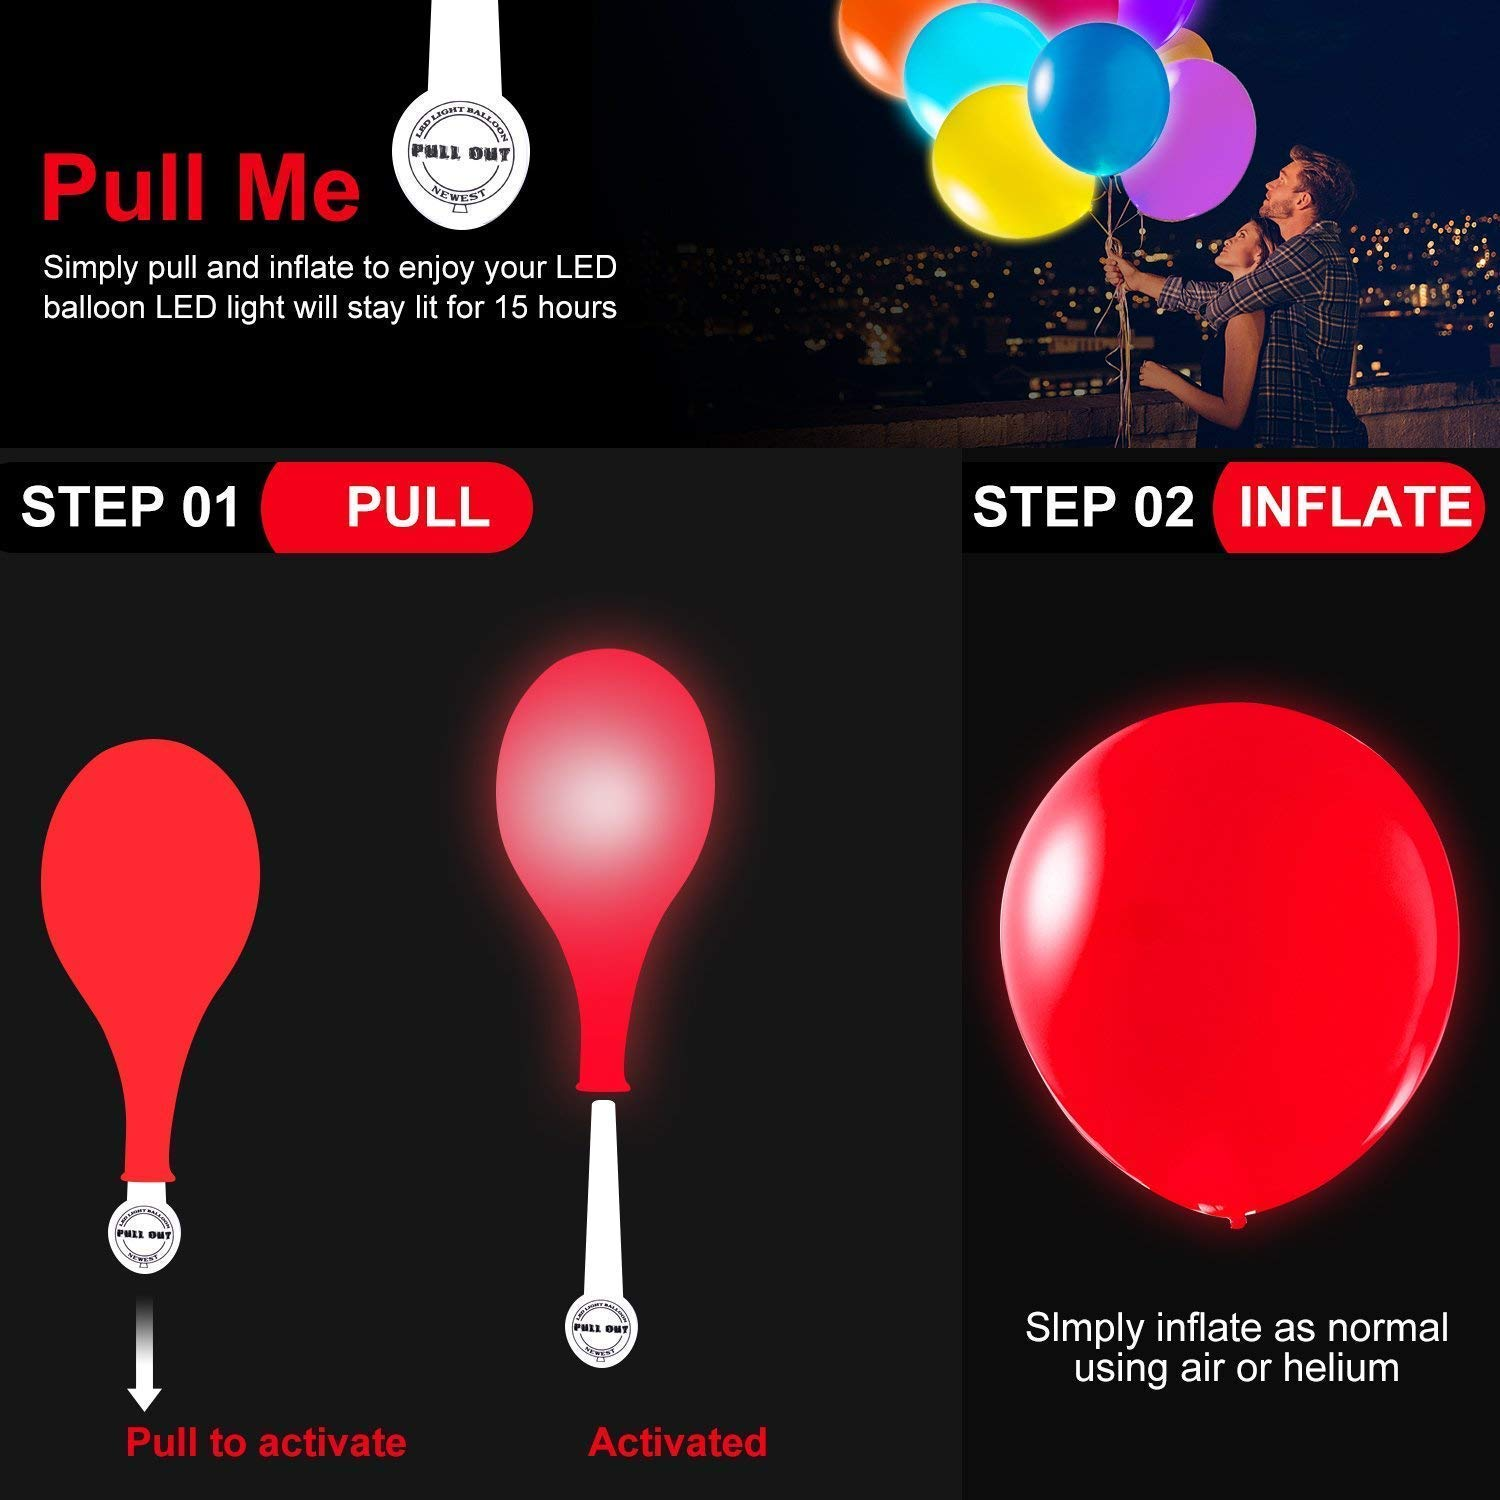 TECHSHARE 32 Pack LED Light Up Balloons, 8 Colors Flashing Lights Glow in The Dark Balloons for Party Supplies Birthday Party Wedding Decorations - Can be Filled with Helium, Air by TECHSHARE (Image #7)